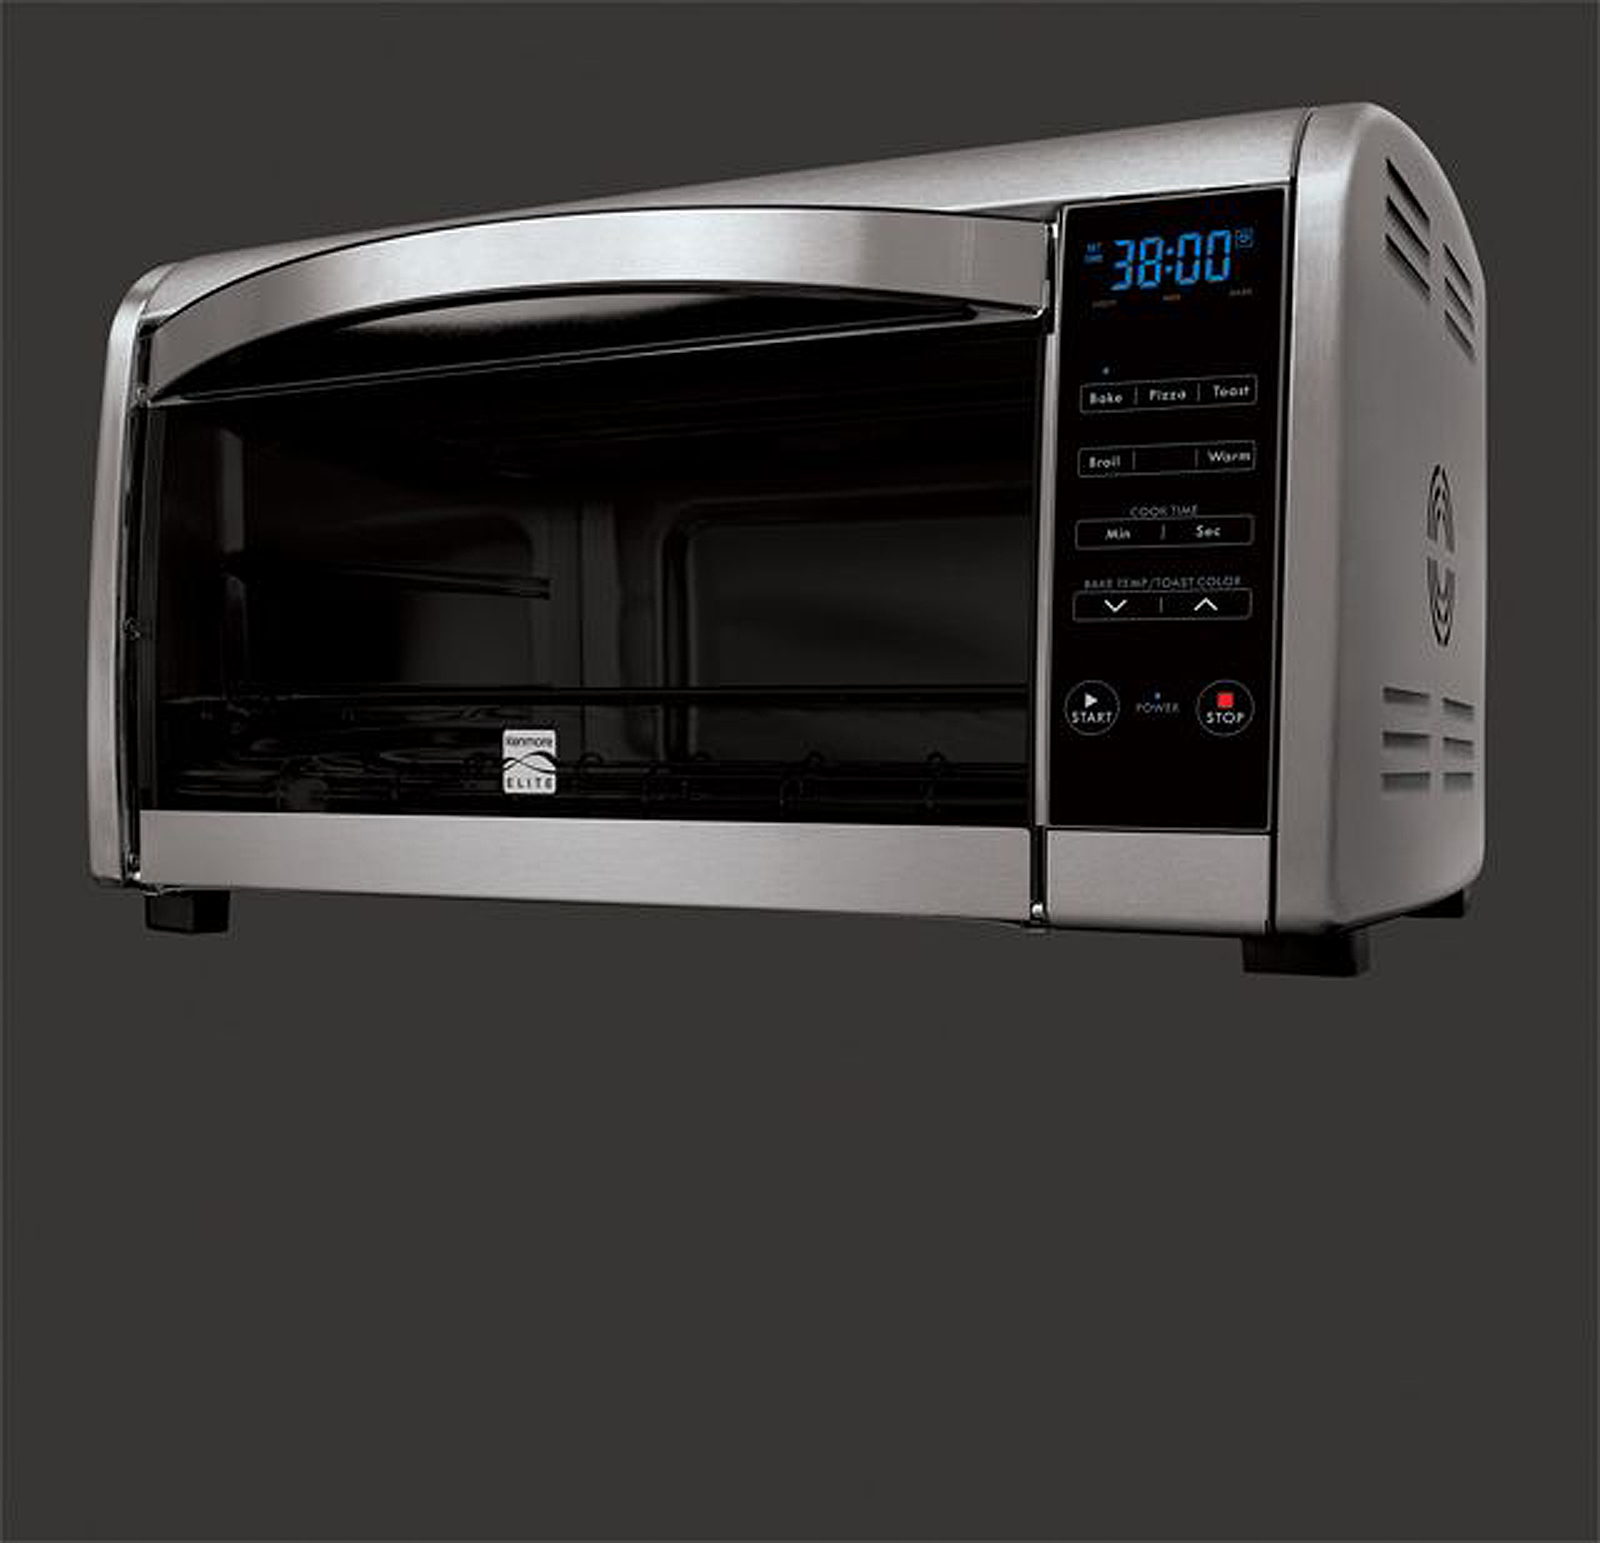 Kenmore Elite Infrared Convection Toaster Oven, Brushed Aluminum/Stainless Steel